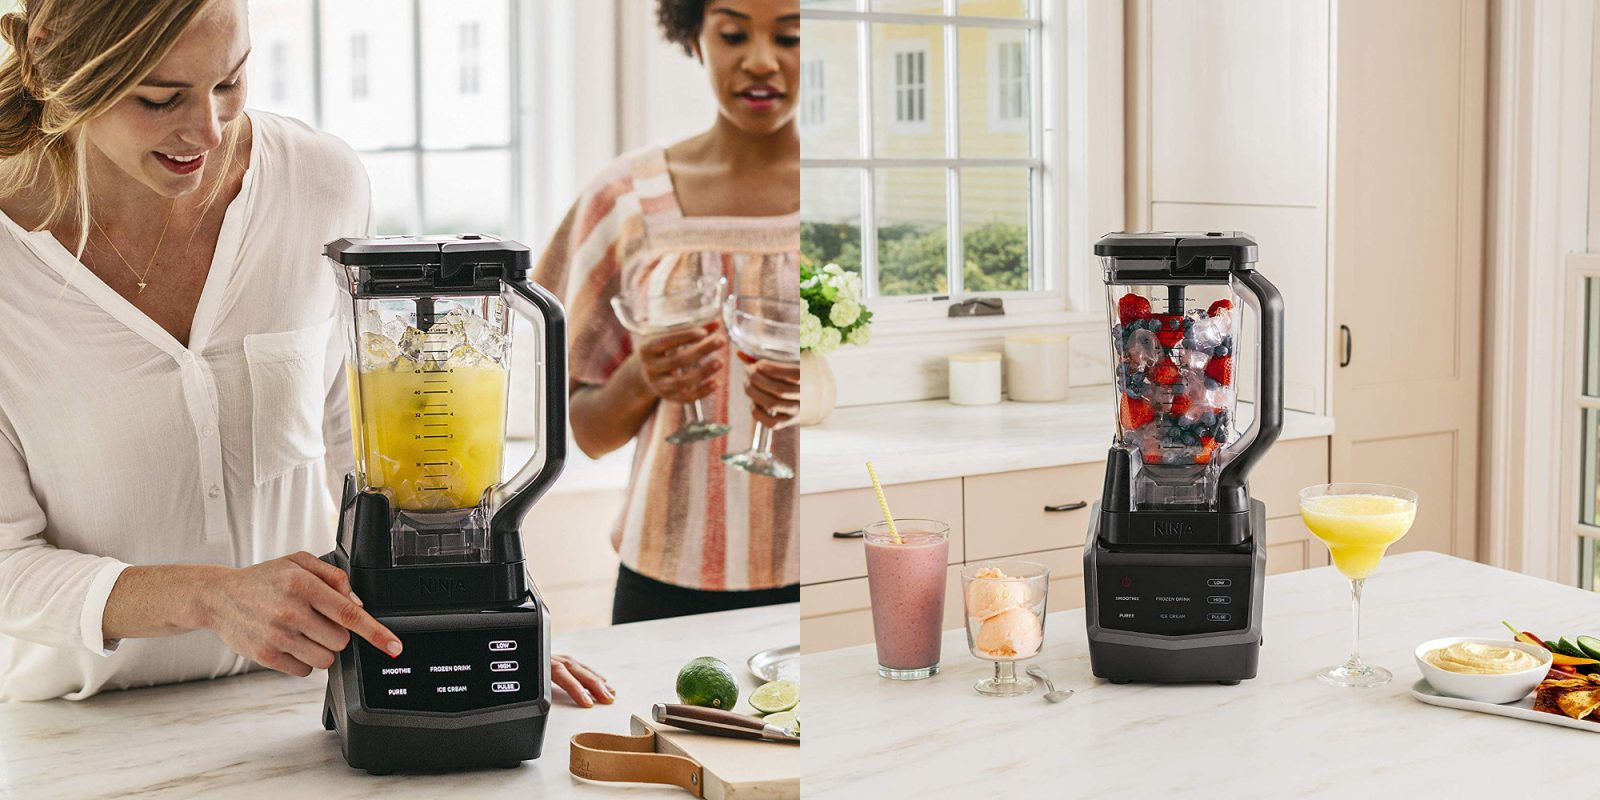 Ninja's 72-Oz. Smart Blender with touchscreen: $70 for today only (Reg. $100+)